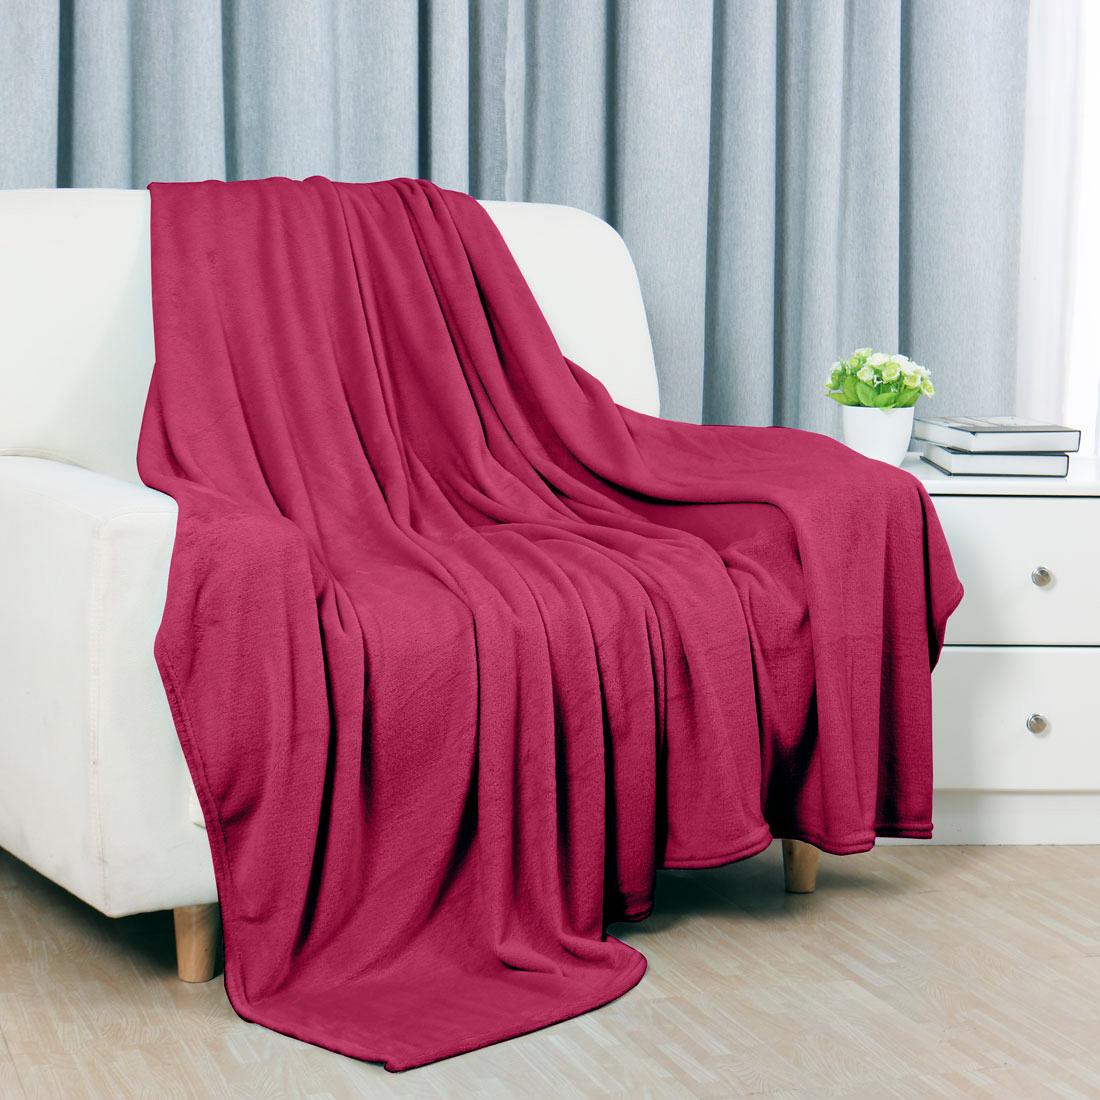 Unique BargainsTwin Size Home Bed Sofa Soft Fleece Throws Blanket Warm Soft Burgundy